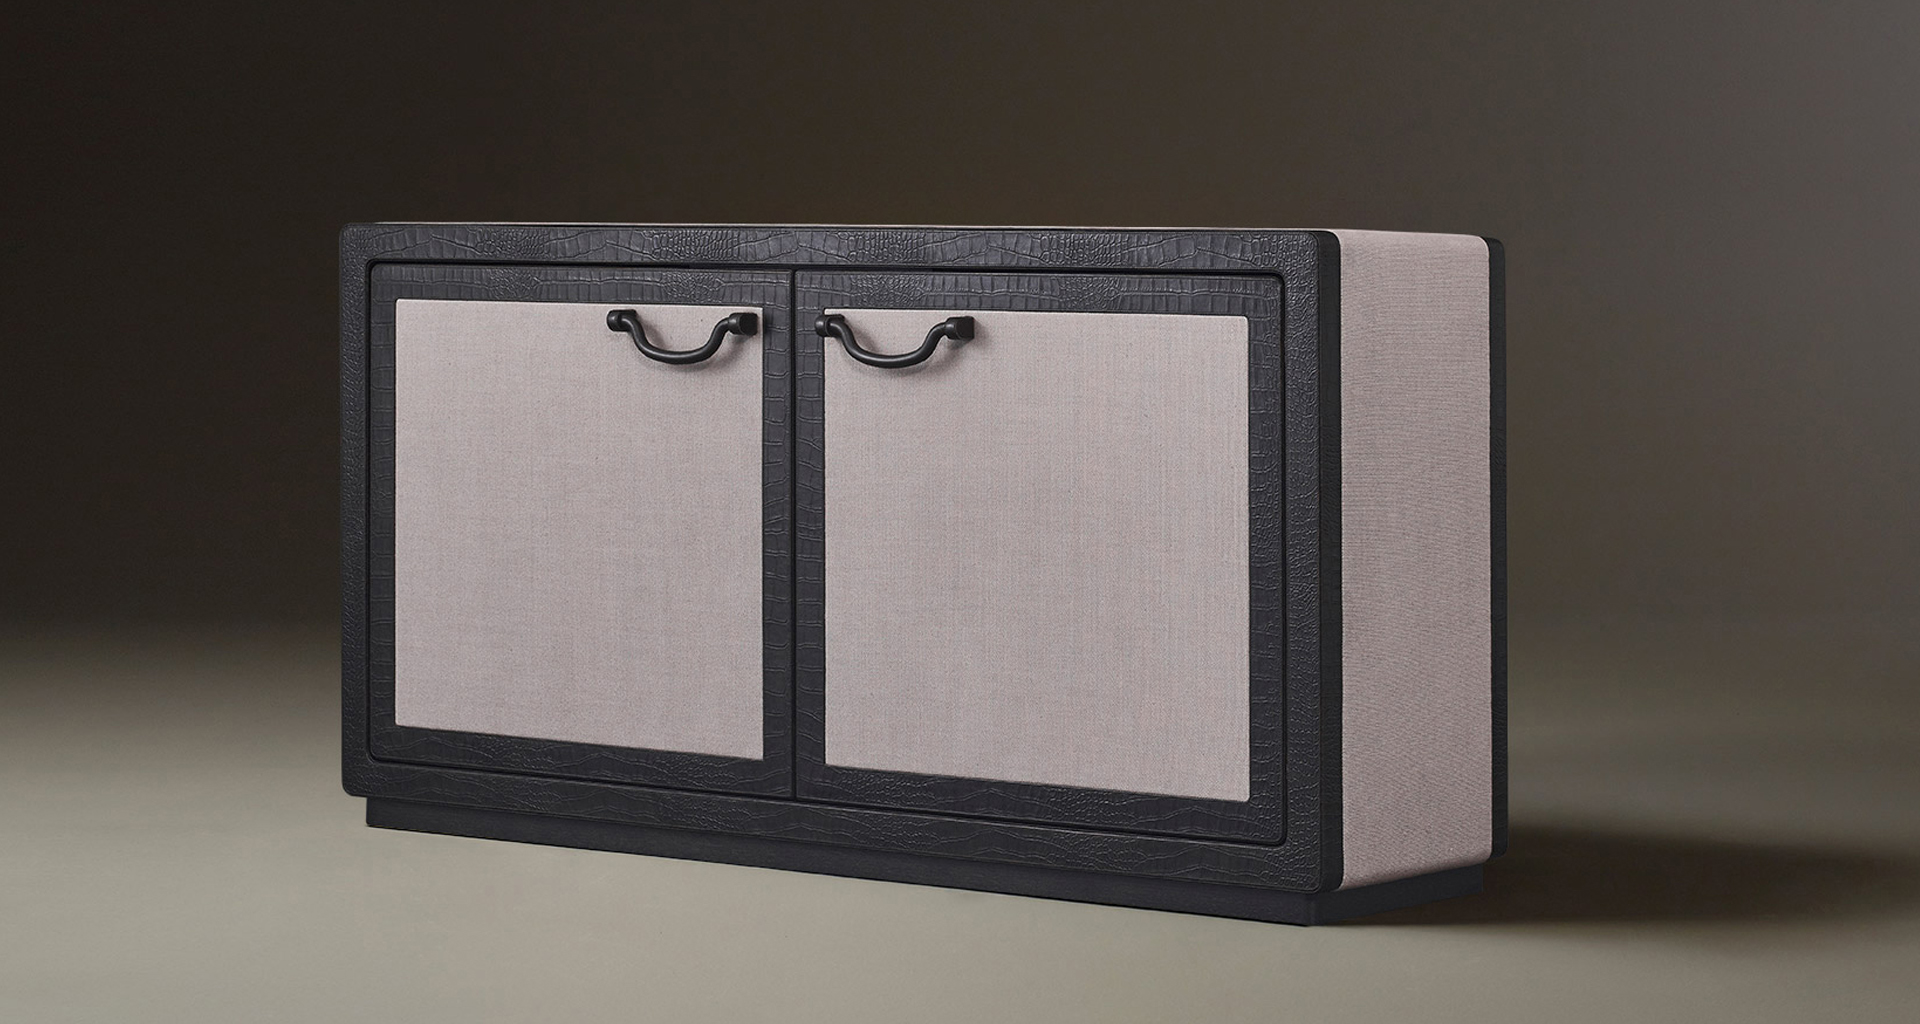 Future Voyager Atto II is a wooden cabinet covered in leather and fabric with handles and placemats in leather from Promemoria's catalogue | Promemoria